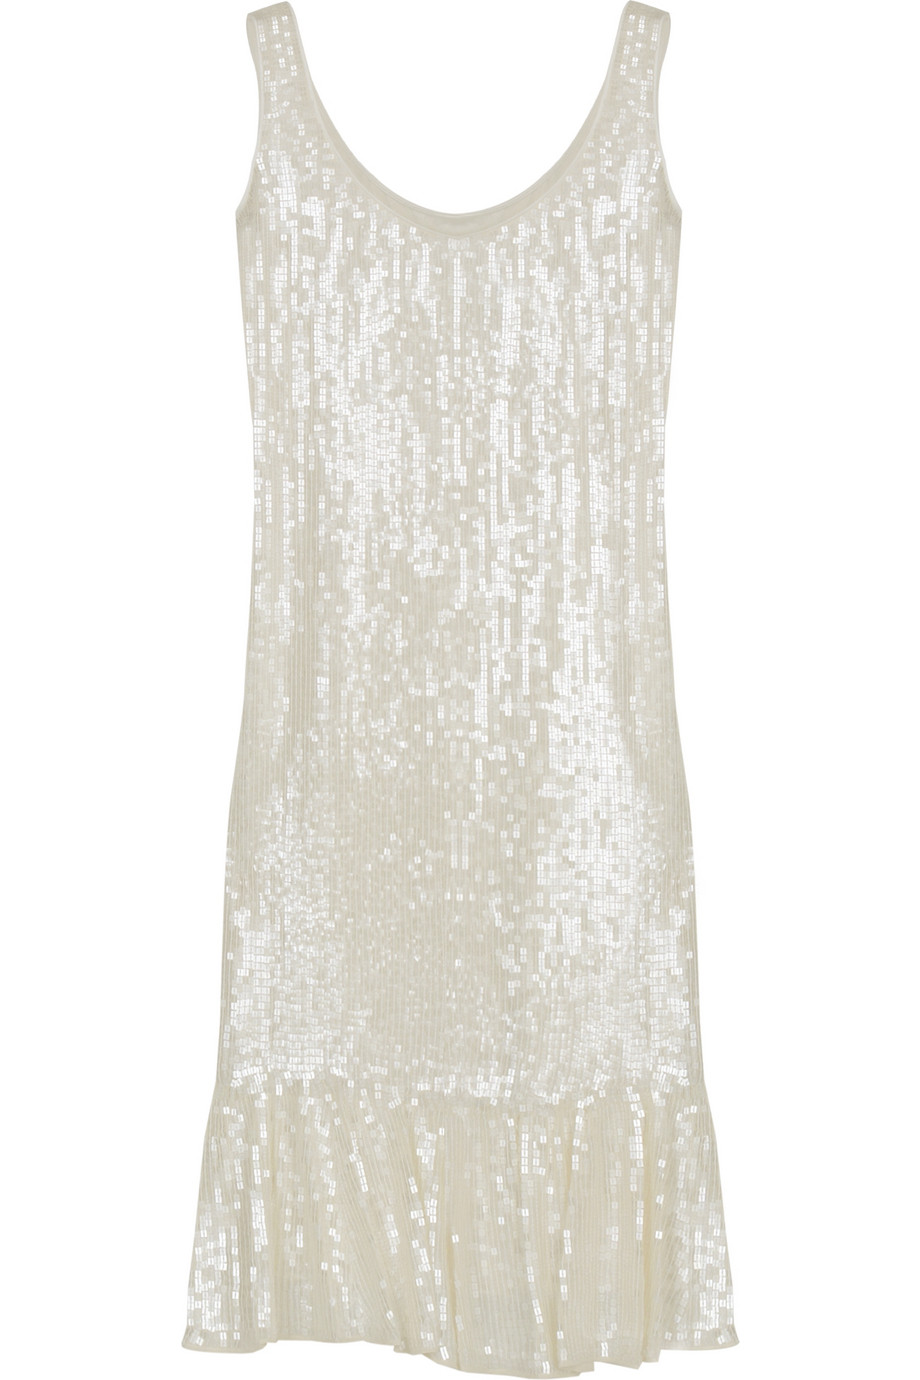 White Sequined Dress